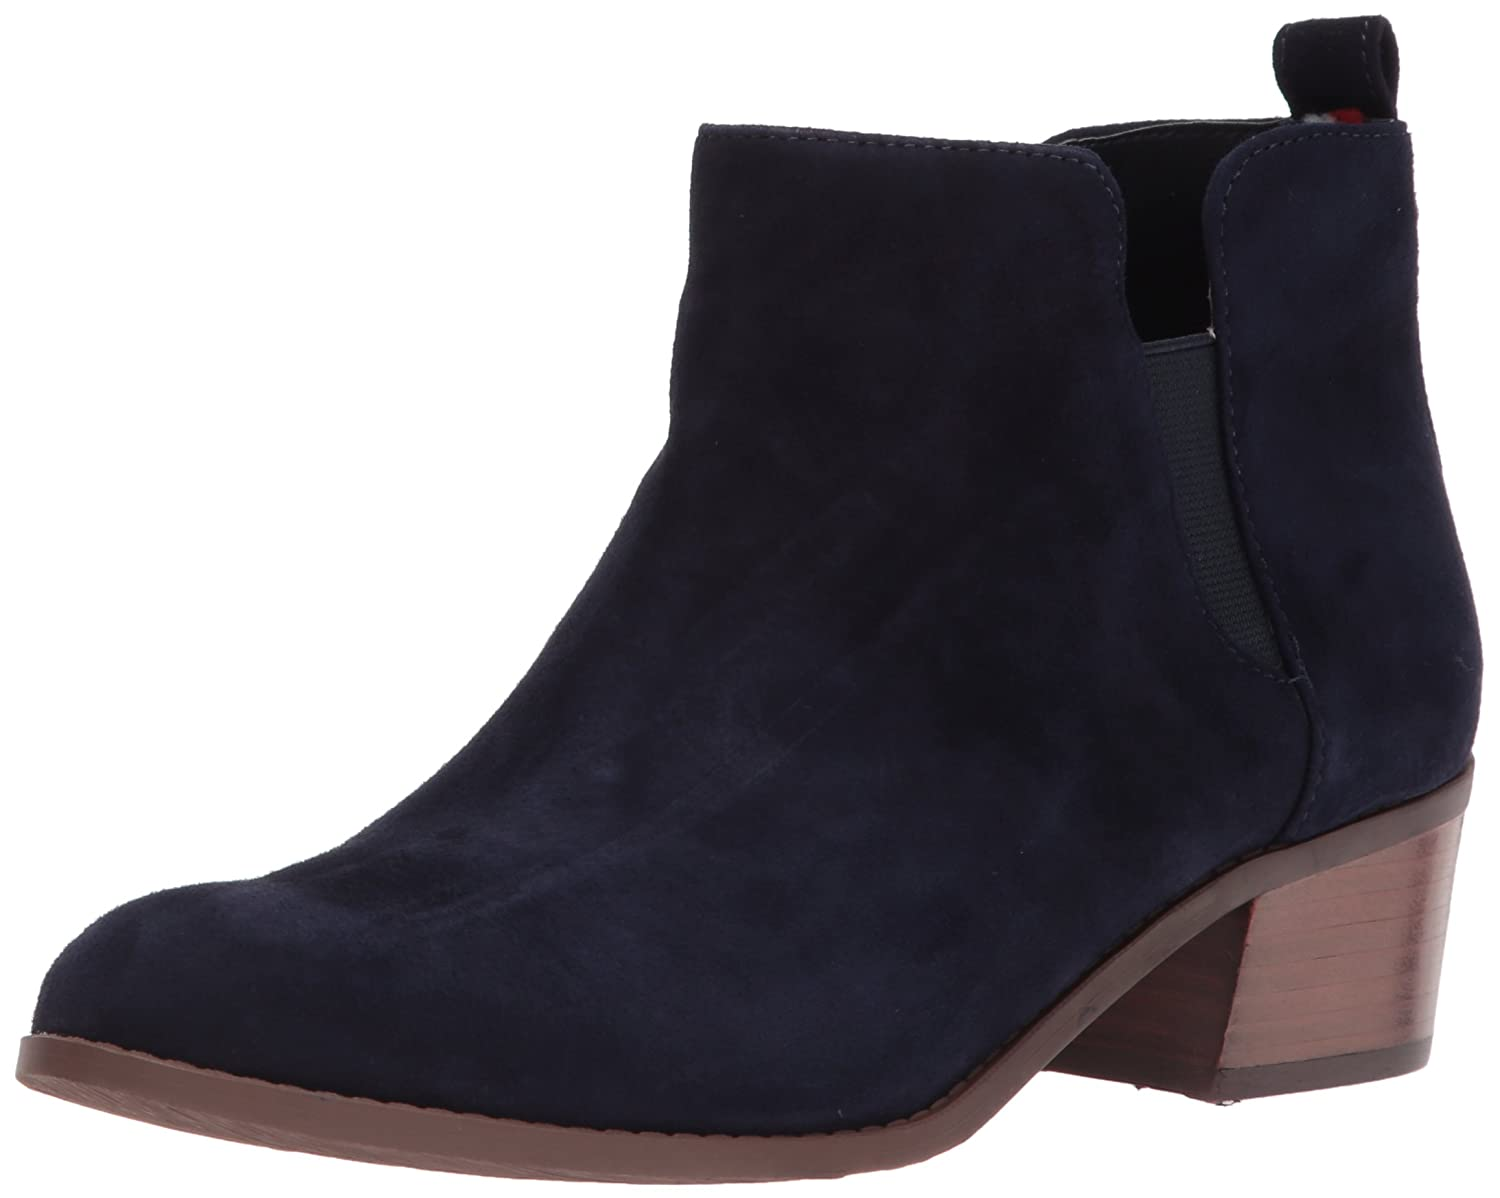 Tommy Hilfiger Women's Randall Ankle Boot B06XVFTBCP 5 B(M) US|Navy